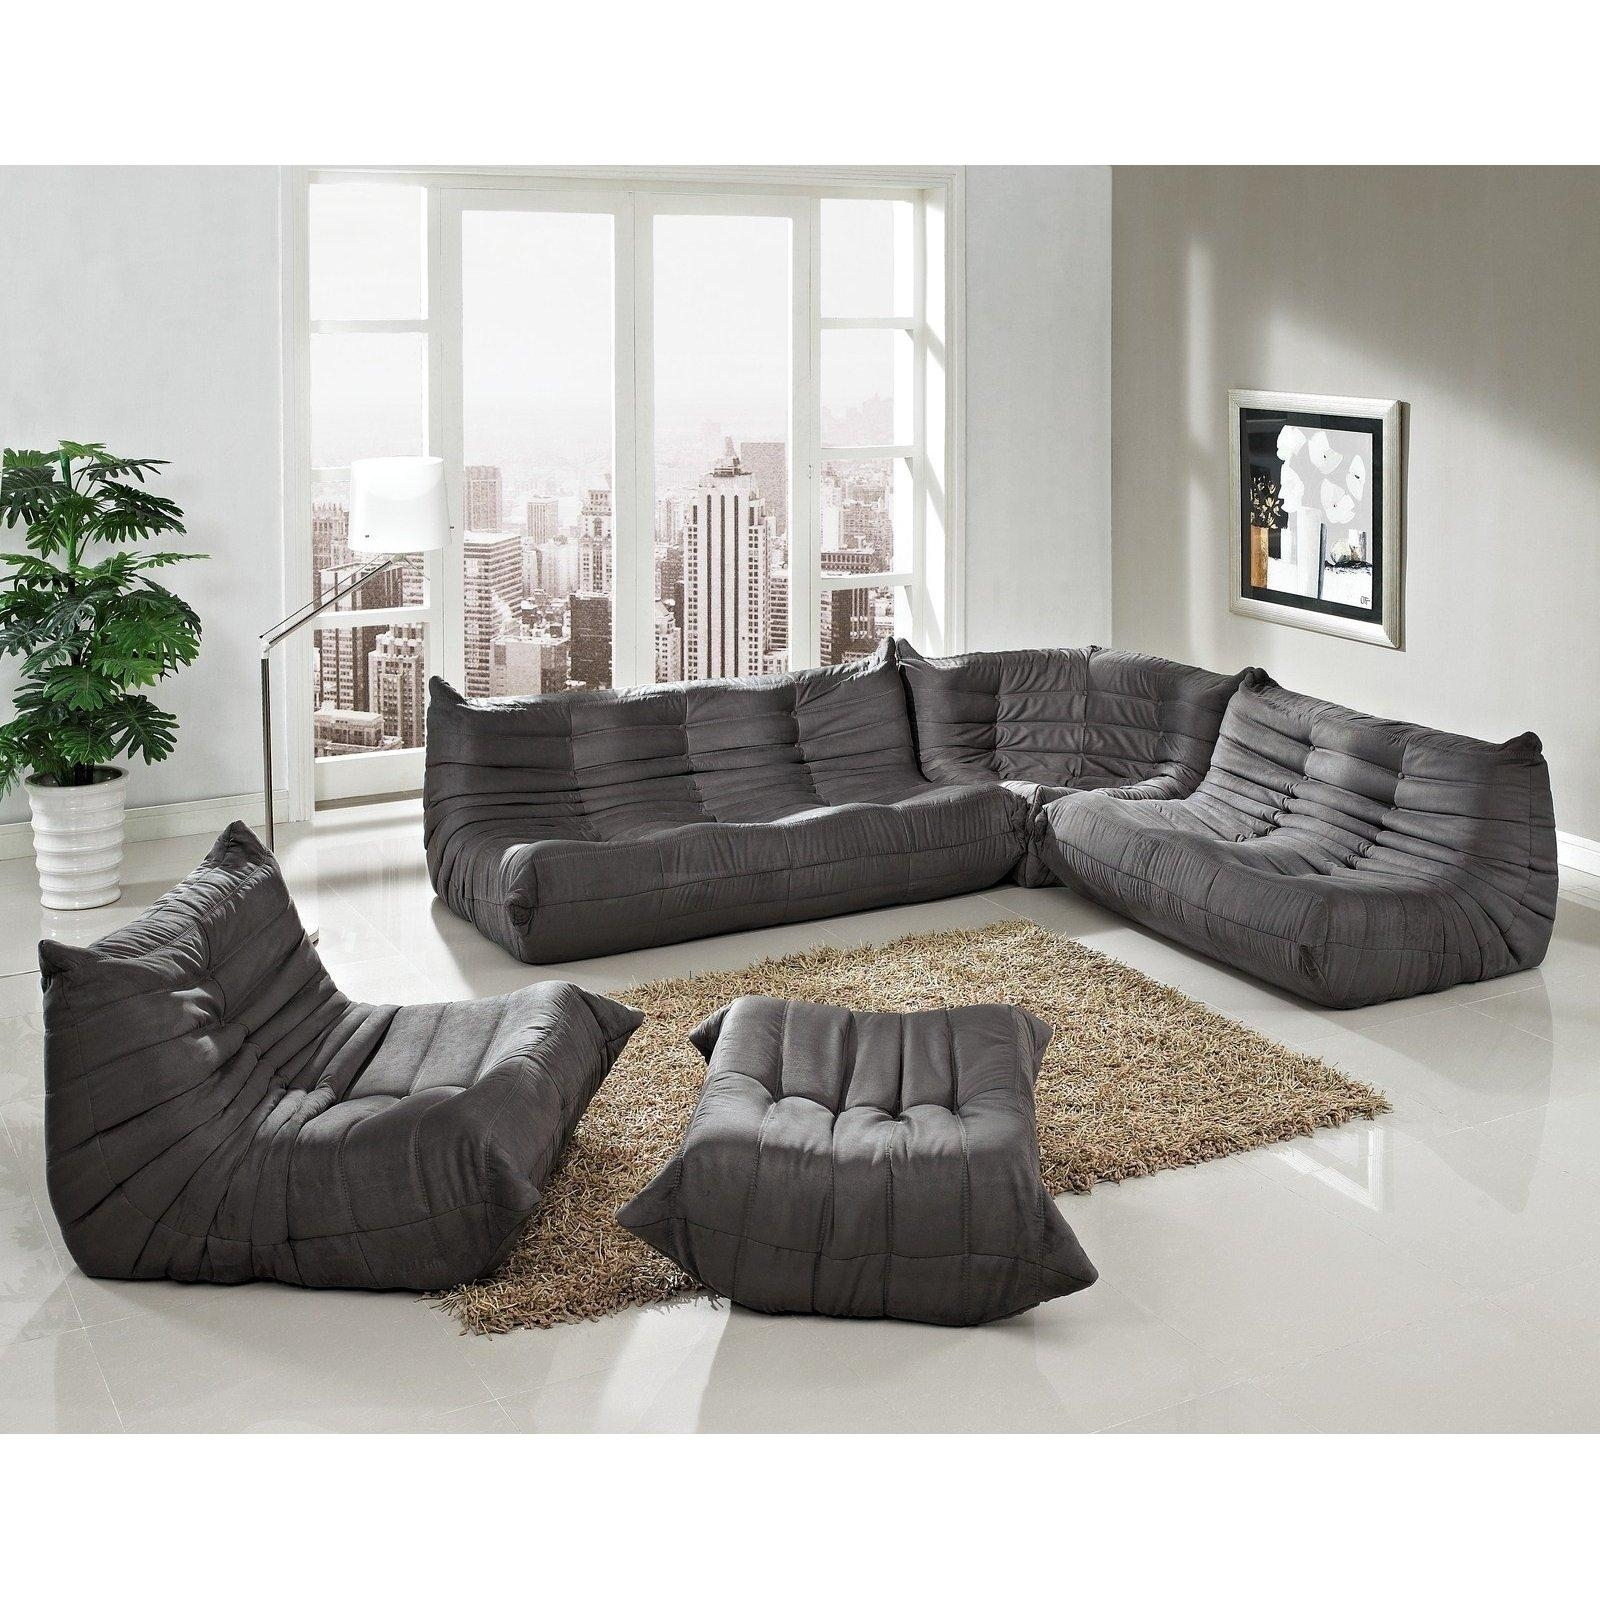 Living Room : Furniture Living Room Modern Sectional Sofas And Throughout Leather Modular Sectional Sofas (Image 11 of 20)